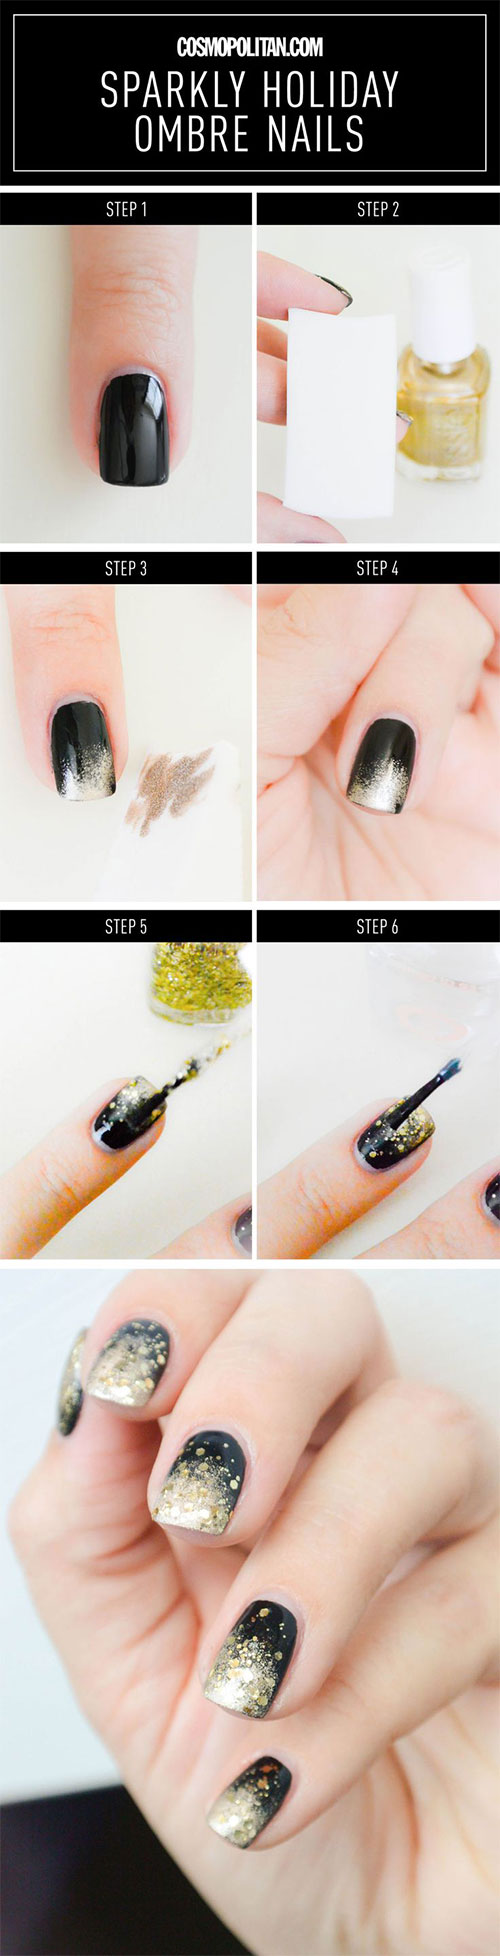 Step-By-Step-Happy-New-Year-Nail-Art-Tutorials-For-Beginners-2015-2016-2